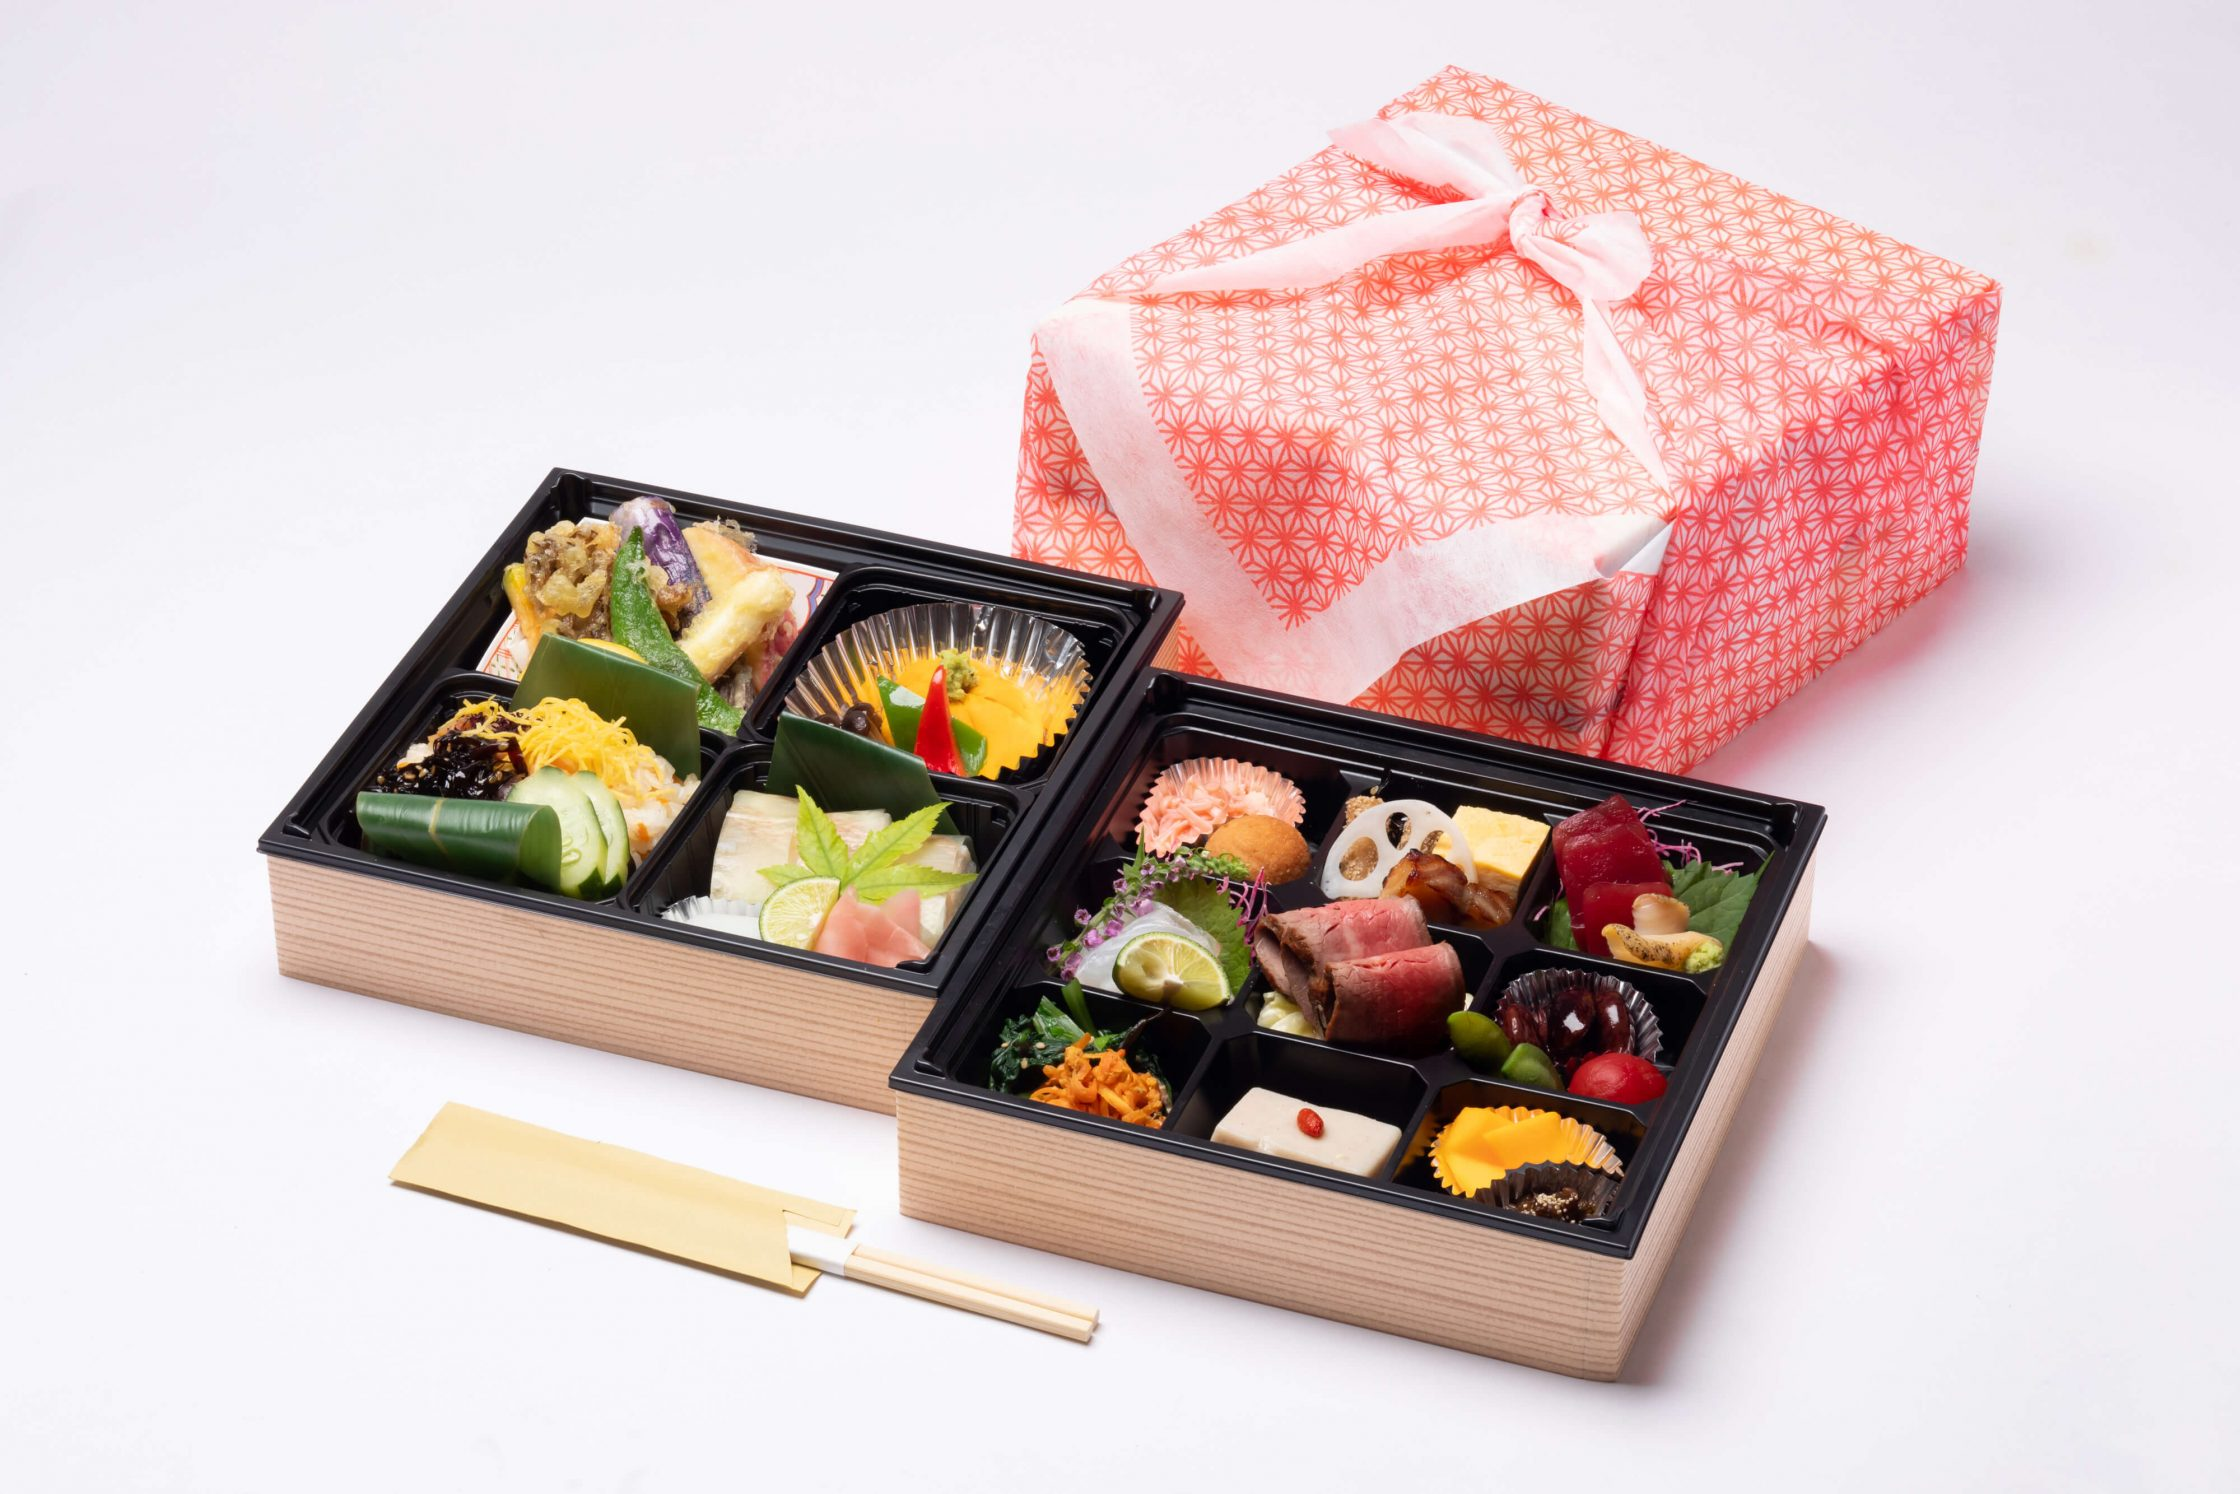 Food Delivery in Nagano